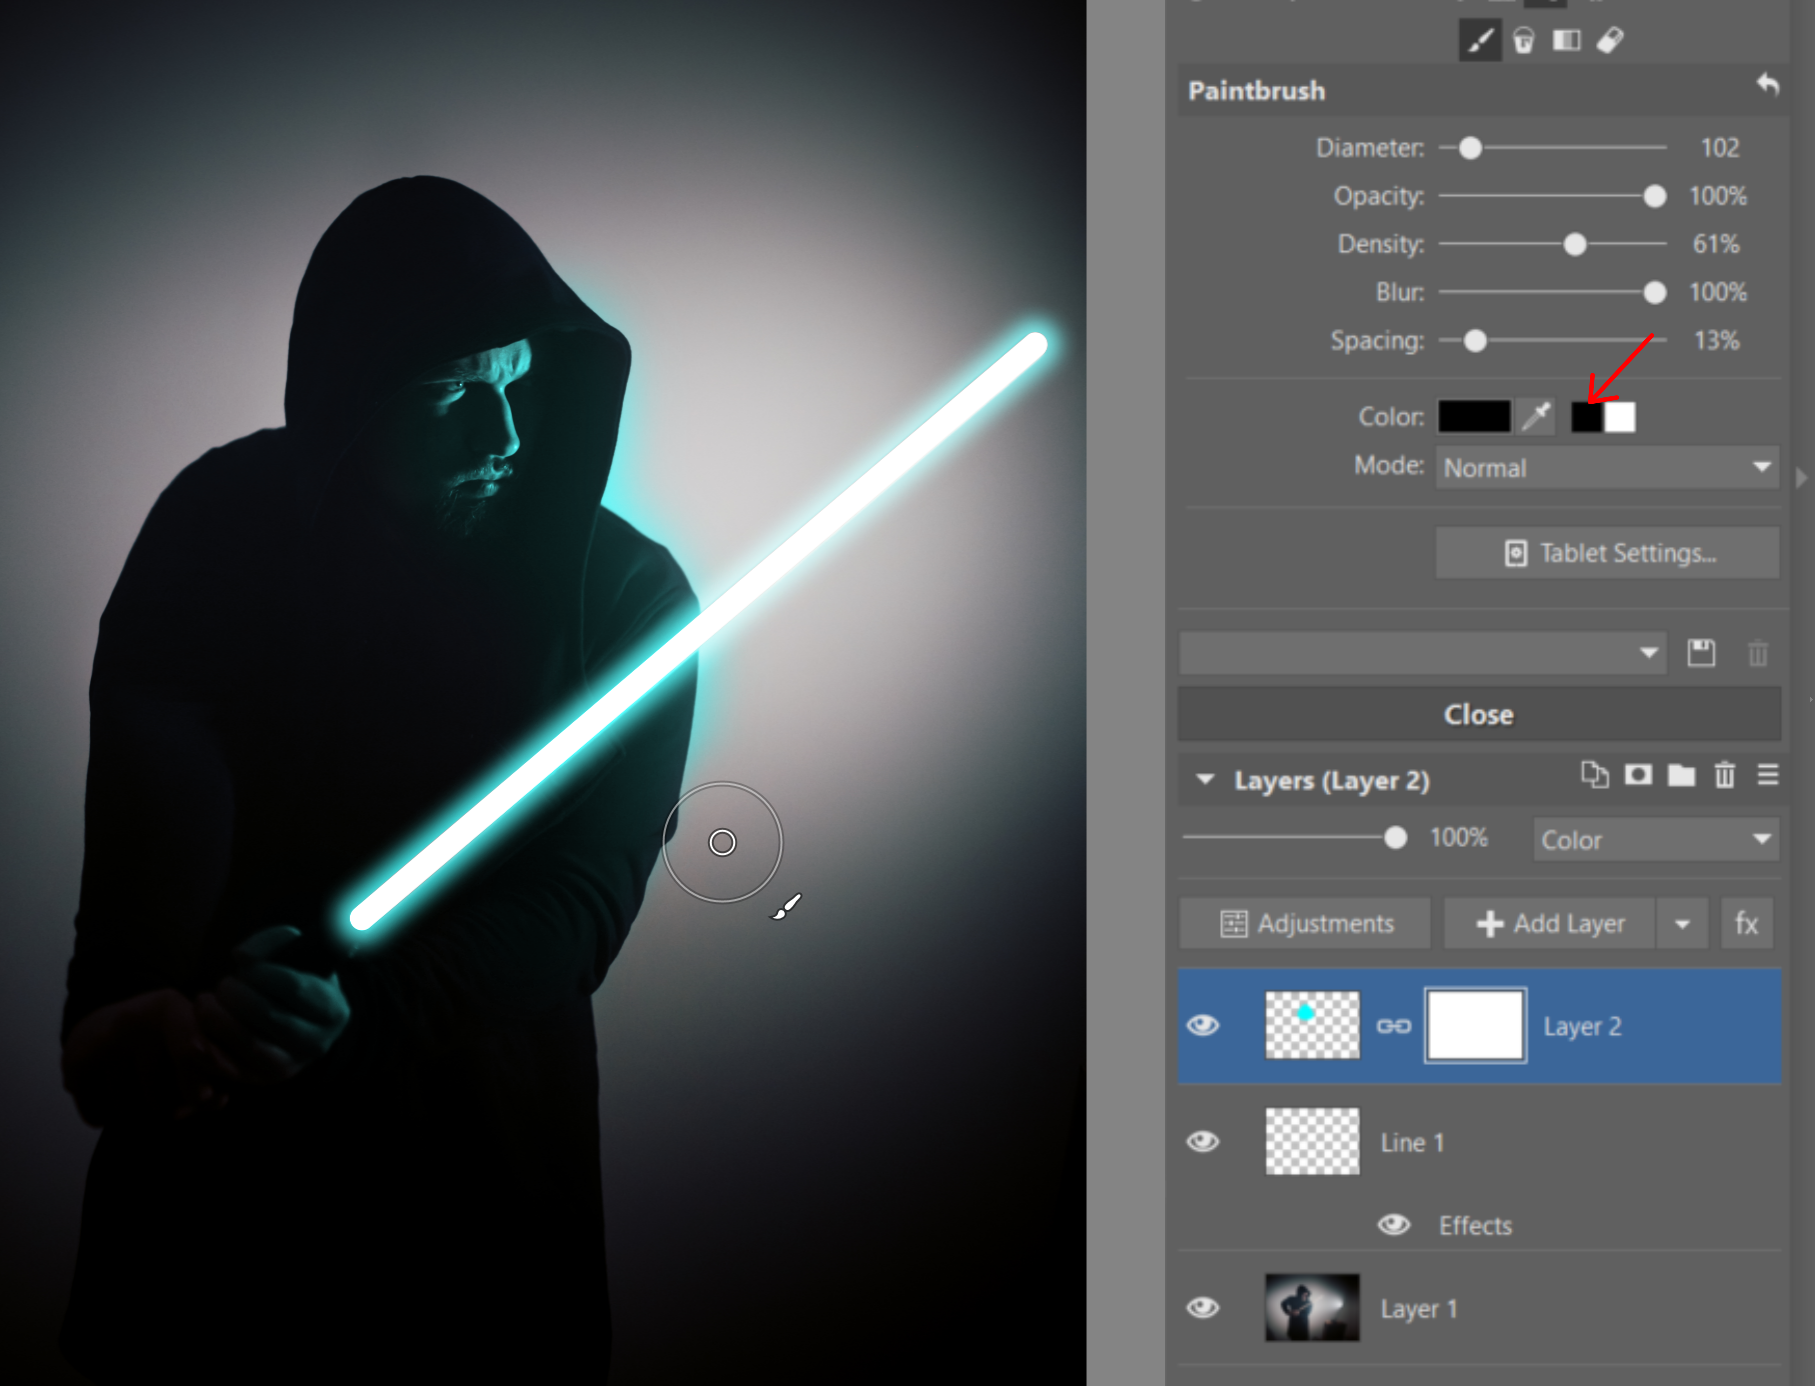 Create Your Own Lightsaber Photo - masking